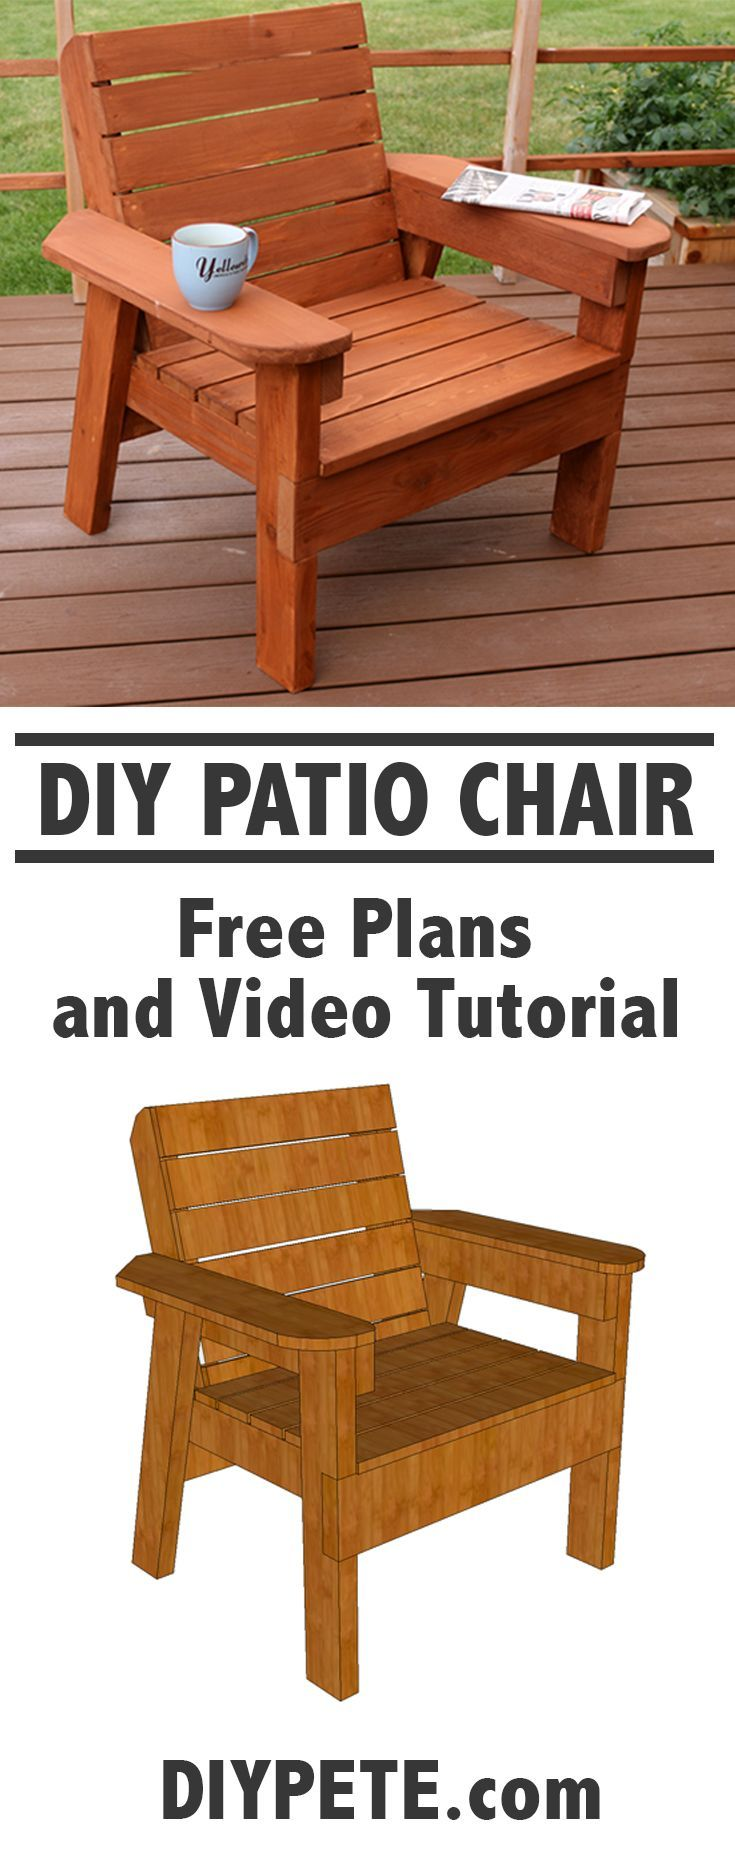 Tips for Making Your Own Outdoor Furniture | Arm chairs, Outdoor ...